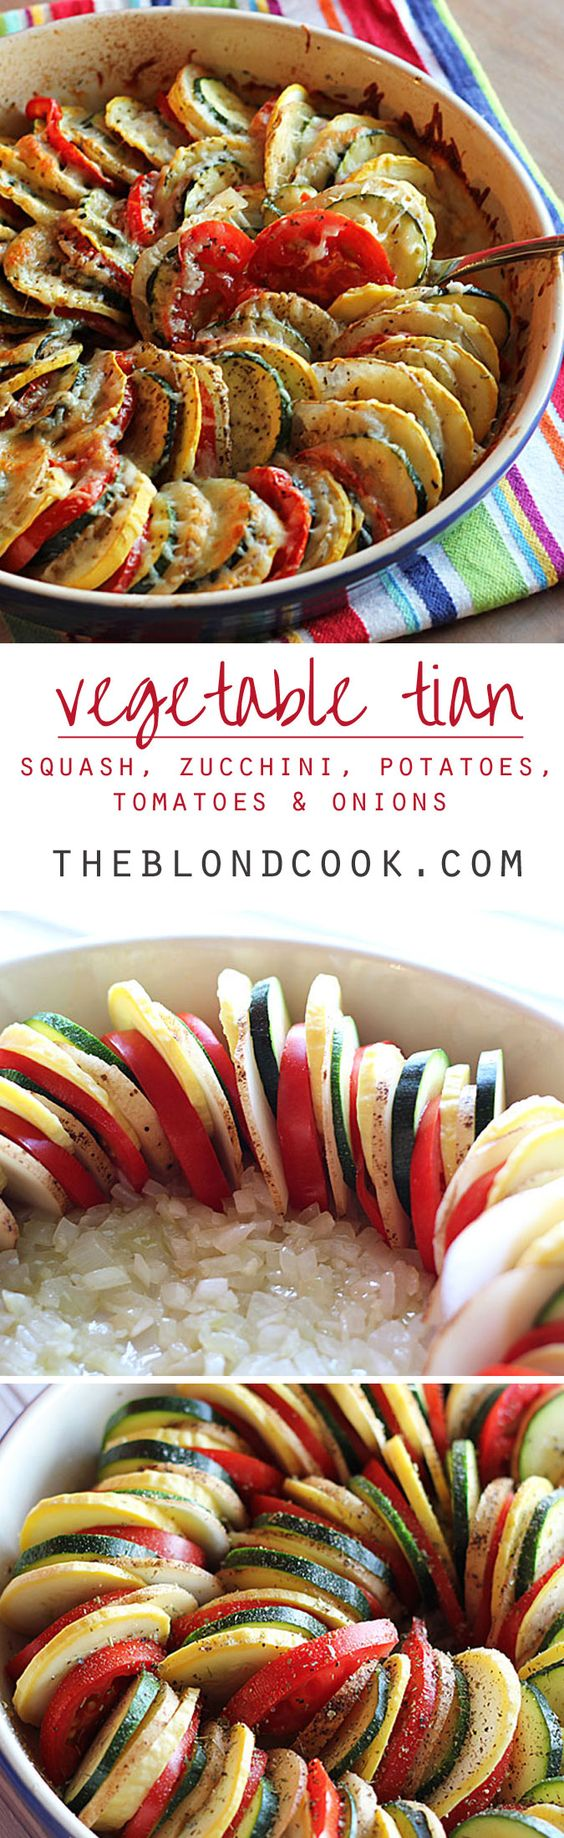 Vegetable Tian ~ Thinly sliced squash, zucchini, potatoes and tomatoes on a bed of onions with seasonings and cheese... a beautiful and delicious side dish!